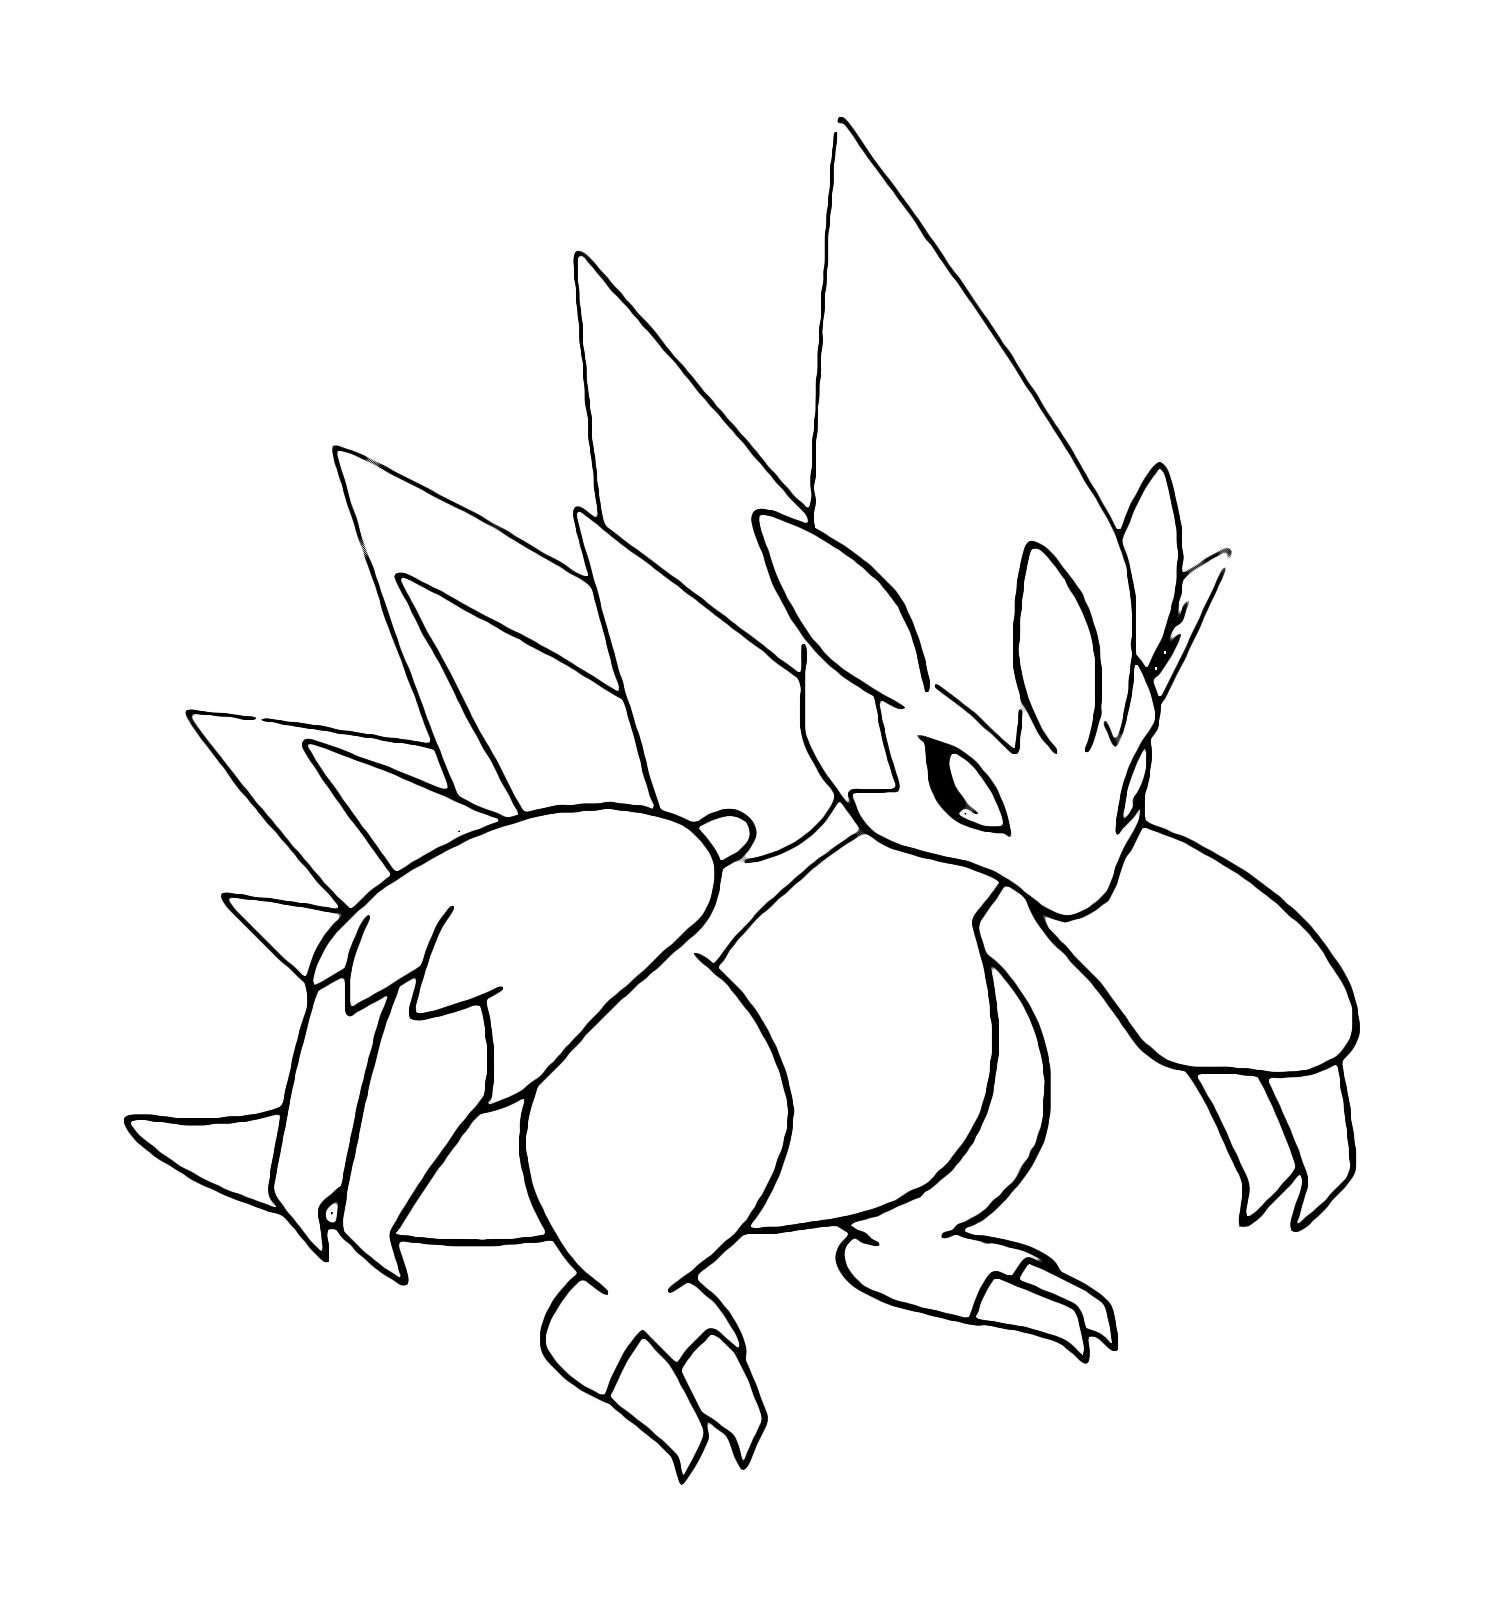 Pokemon Alolan Sandslash Coloring Pages Ausmalbilder Ausmalen Bilder